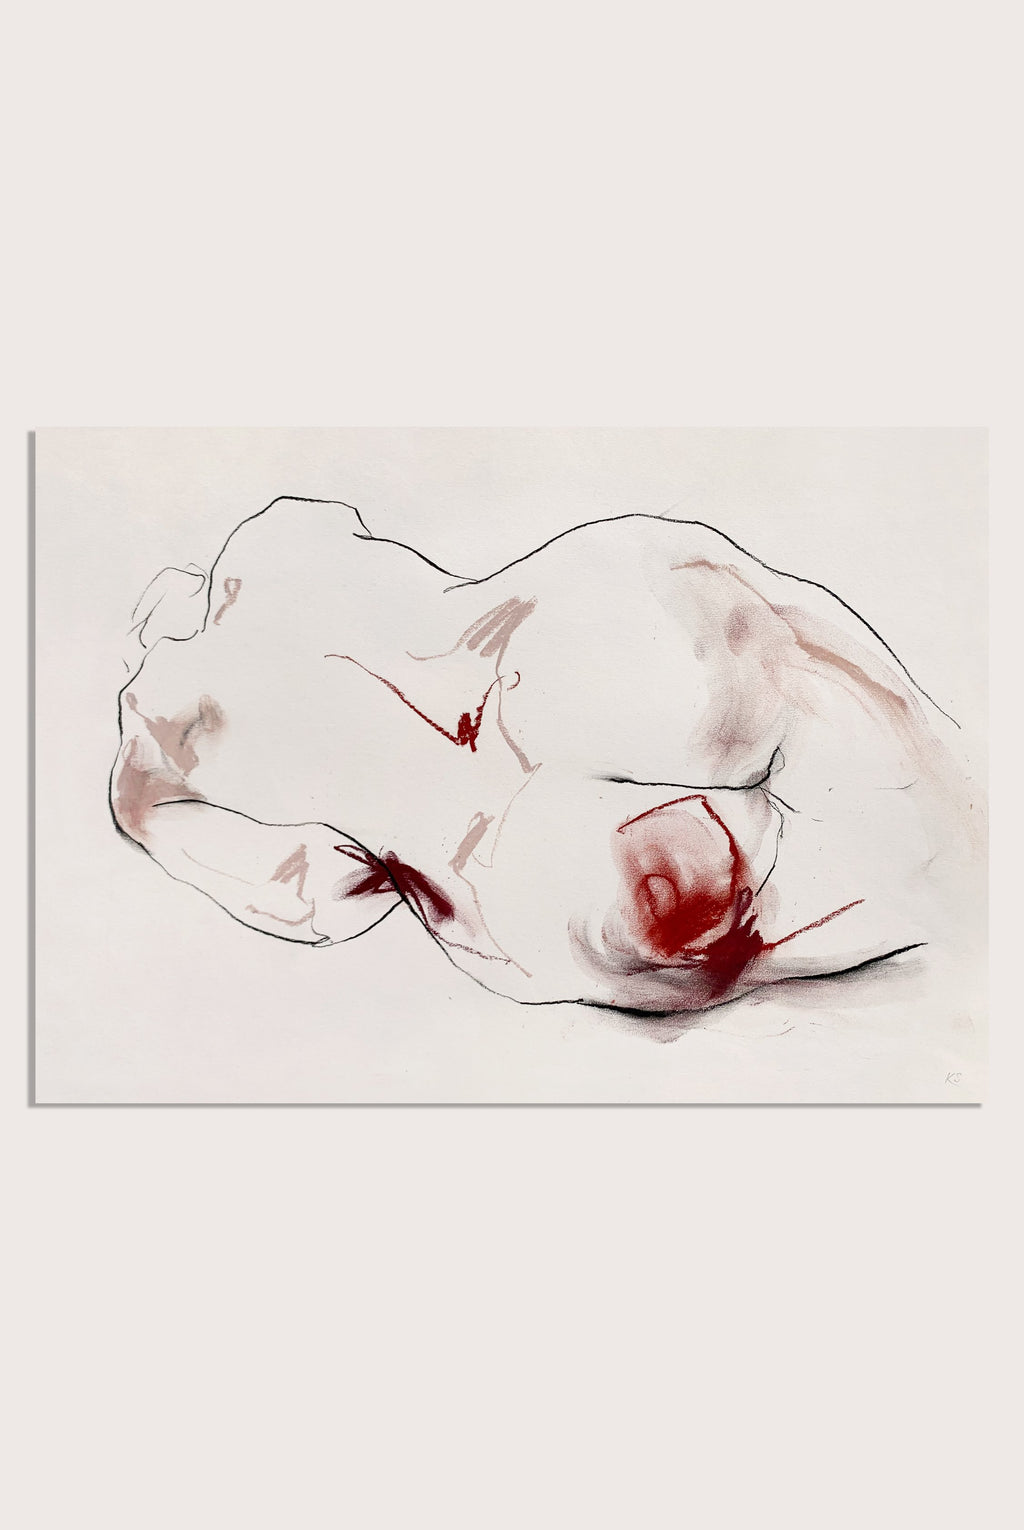 'Love Becomes You', an expressive life-drawing by contemporary, woman artist Katherine Sheers